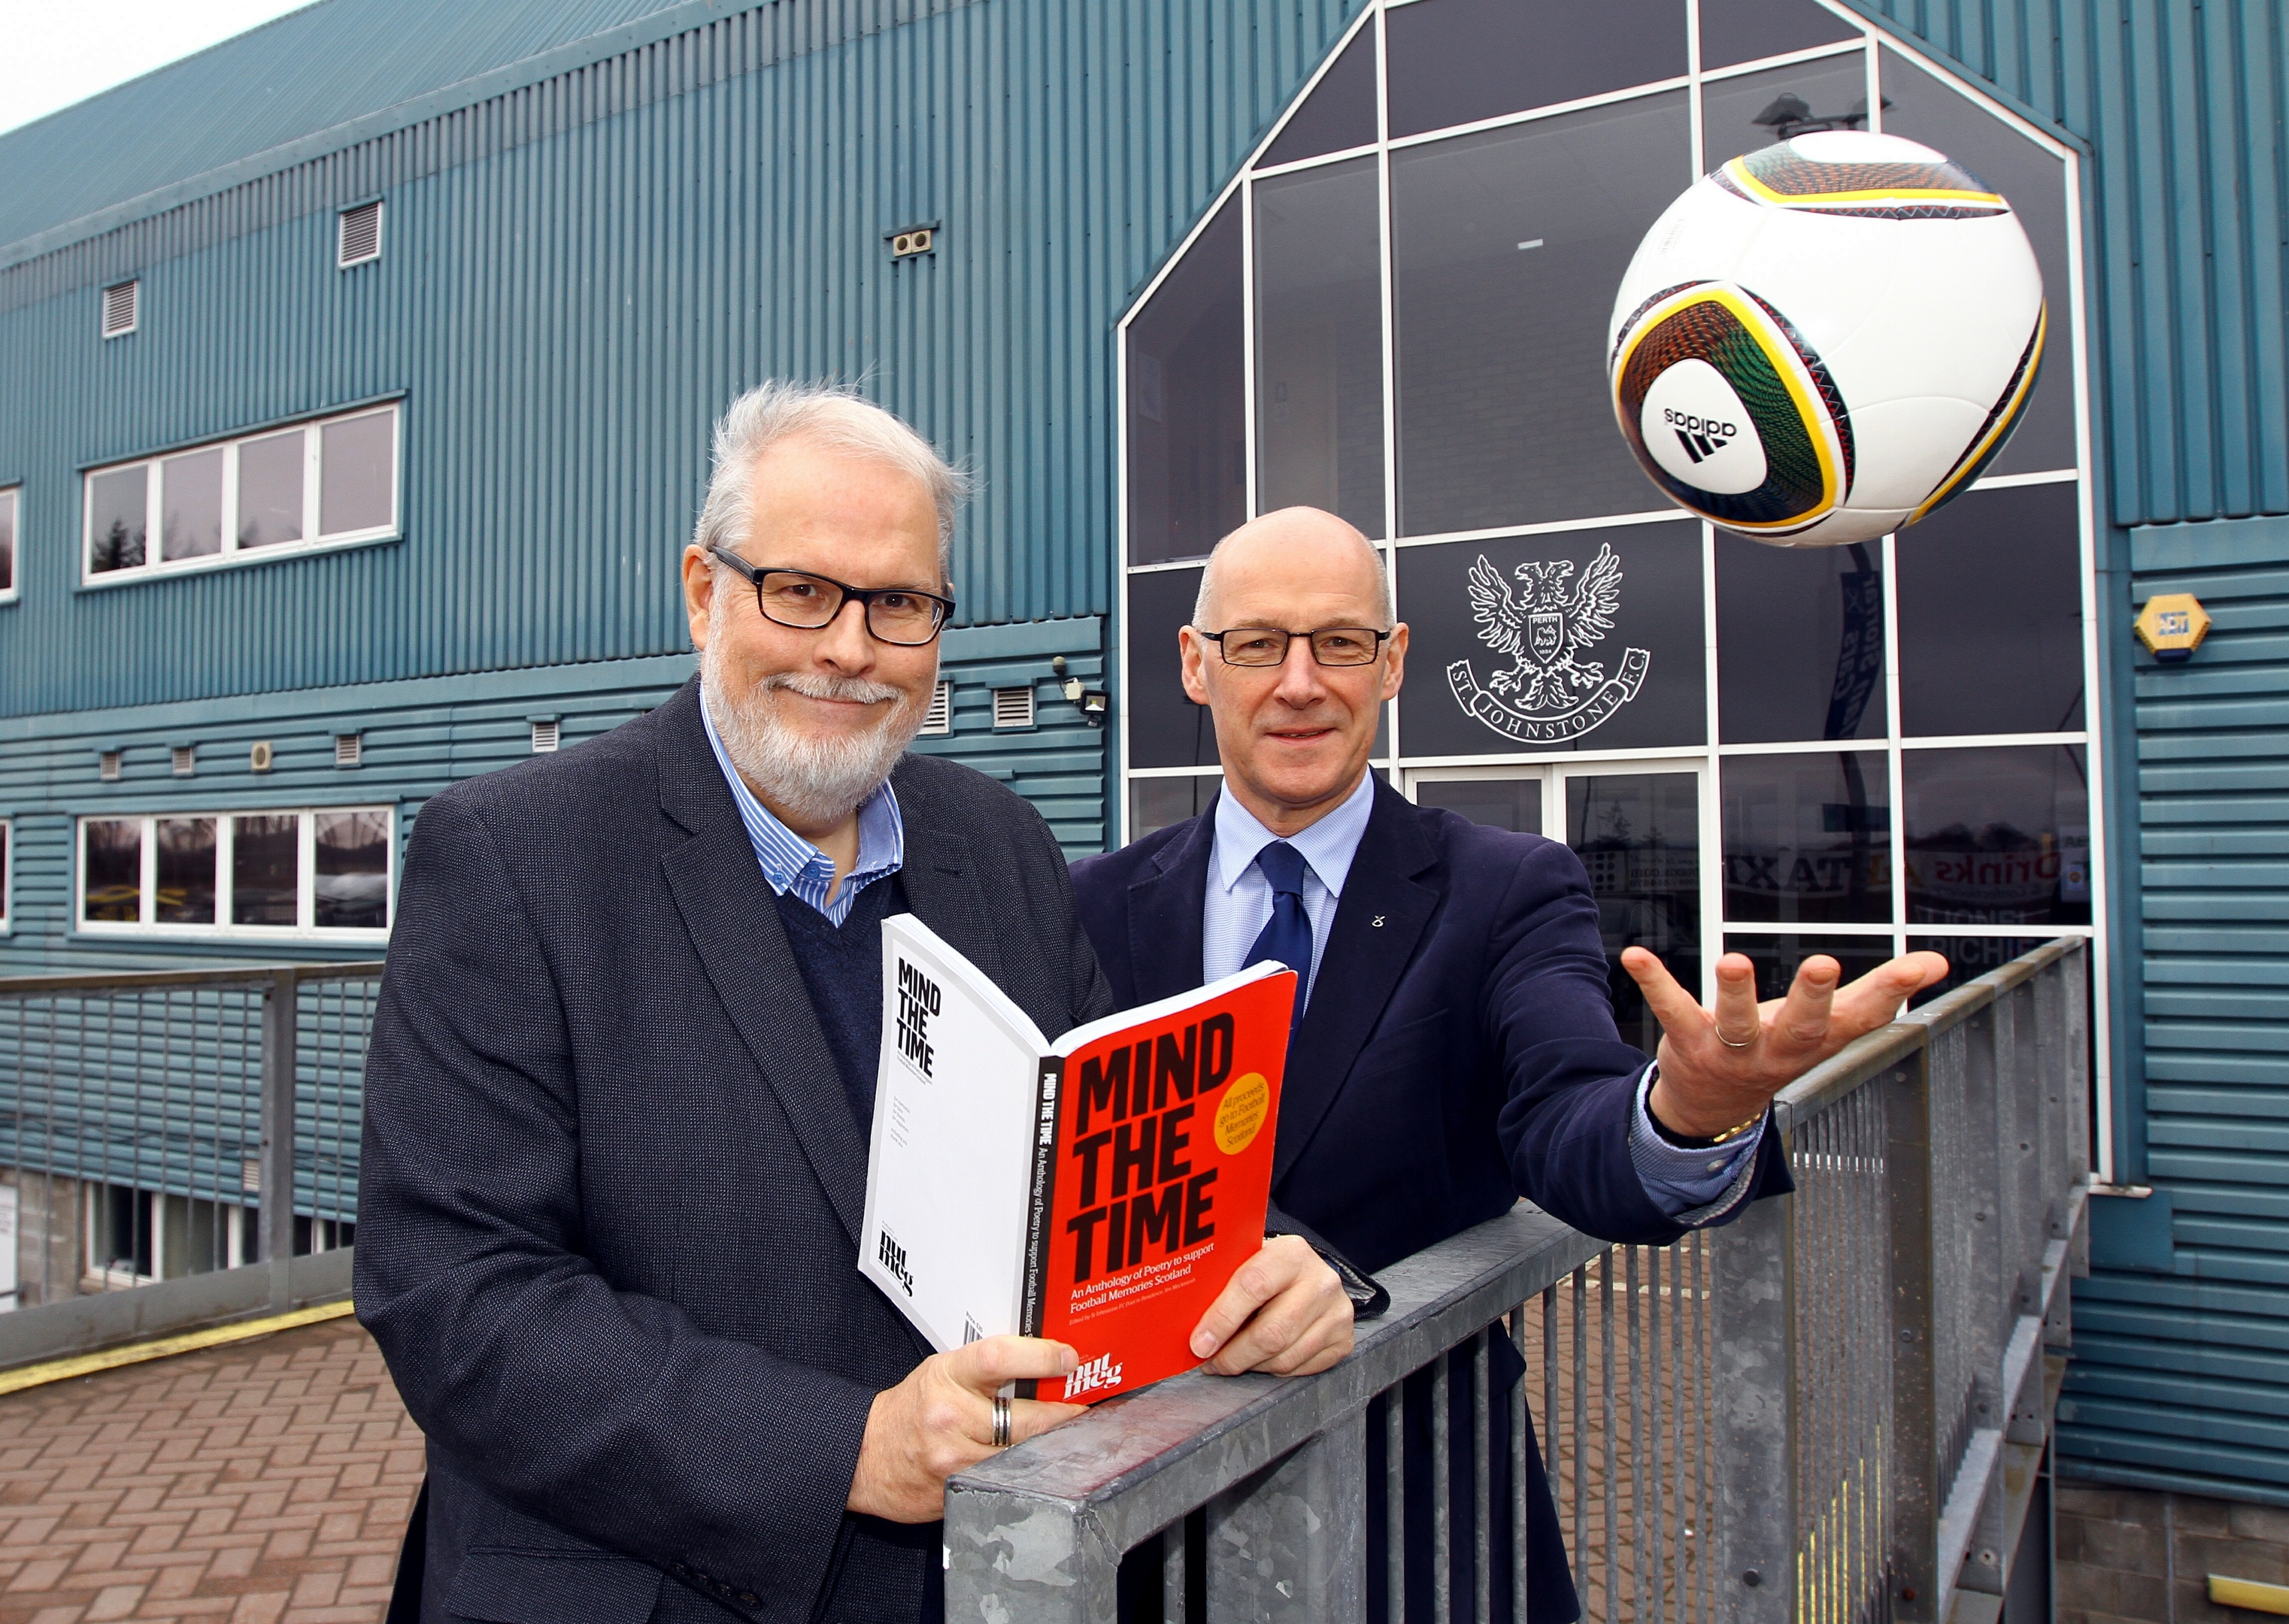 John Swinney met St Johnstone's poet in resident Jim MacIntosh with his book Mind the Time to promote their forthcoming poetry evening in support of Football Memories Scotland.